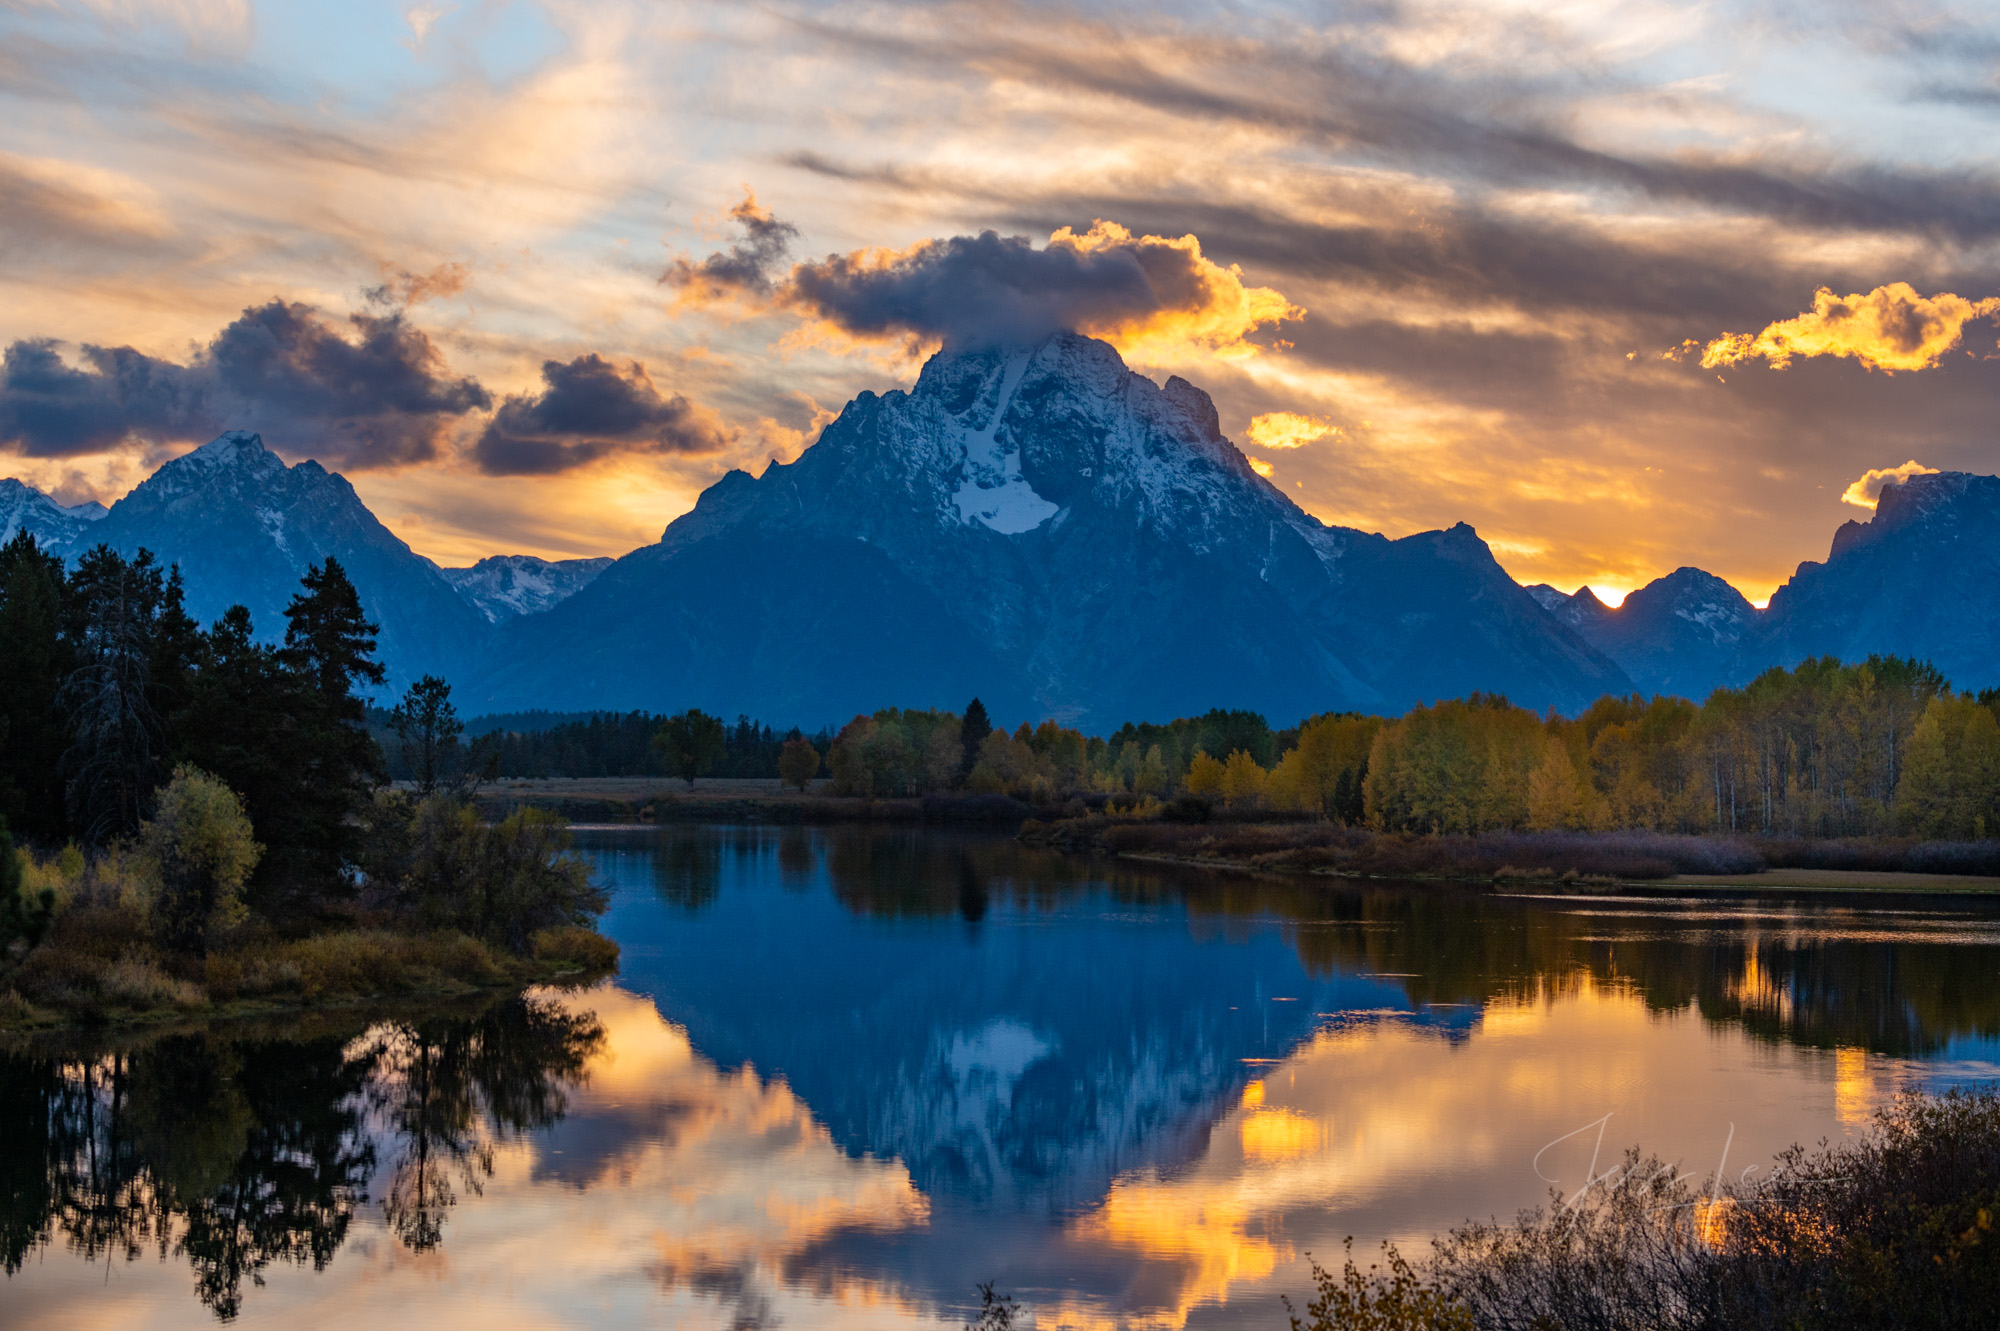 Fine Art Limited Edition of 250 prints of the sun setting behind Mt Moran with the scene reflected in the Oxbow of the Snake...